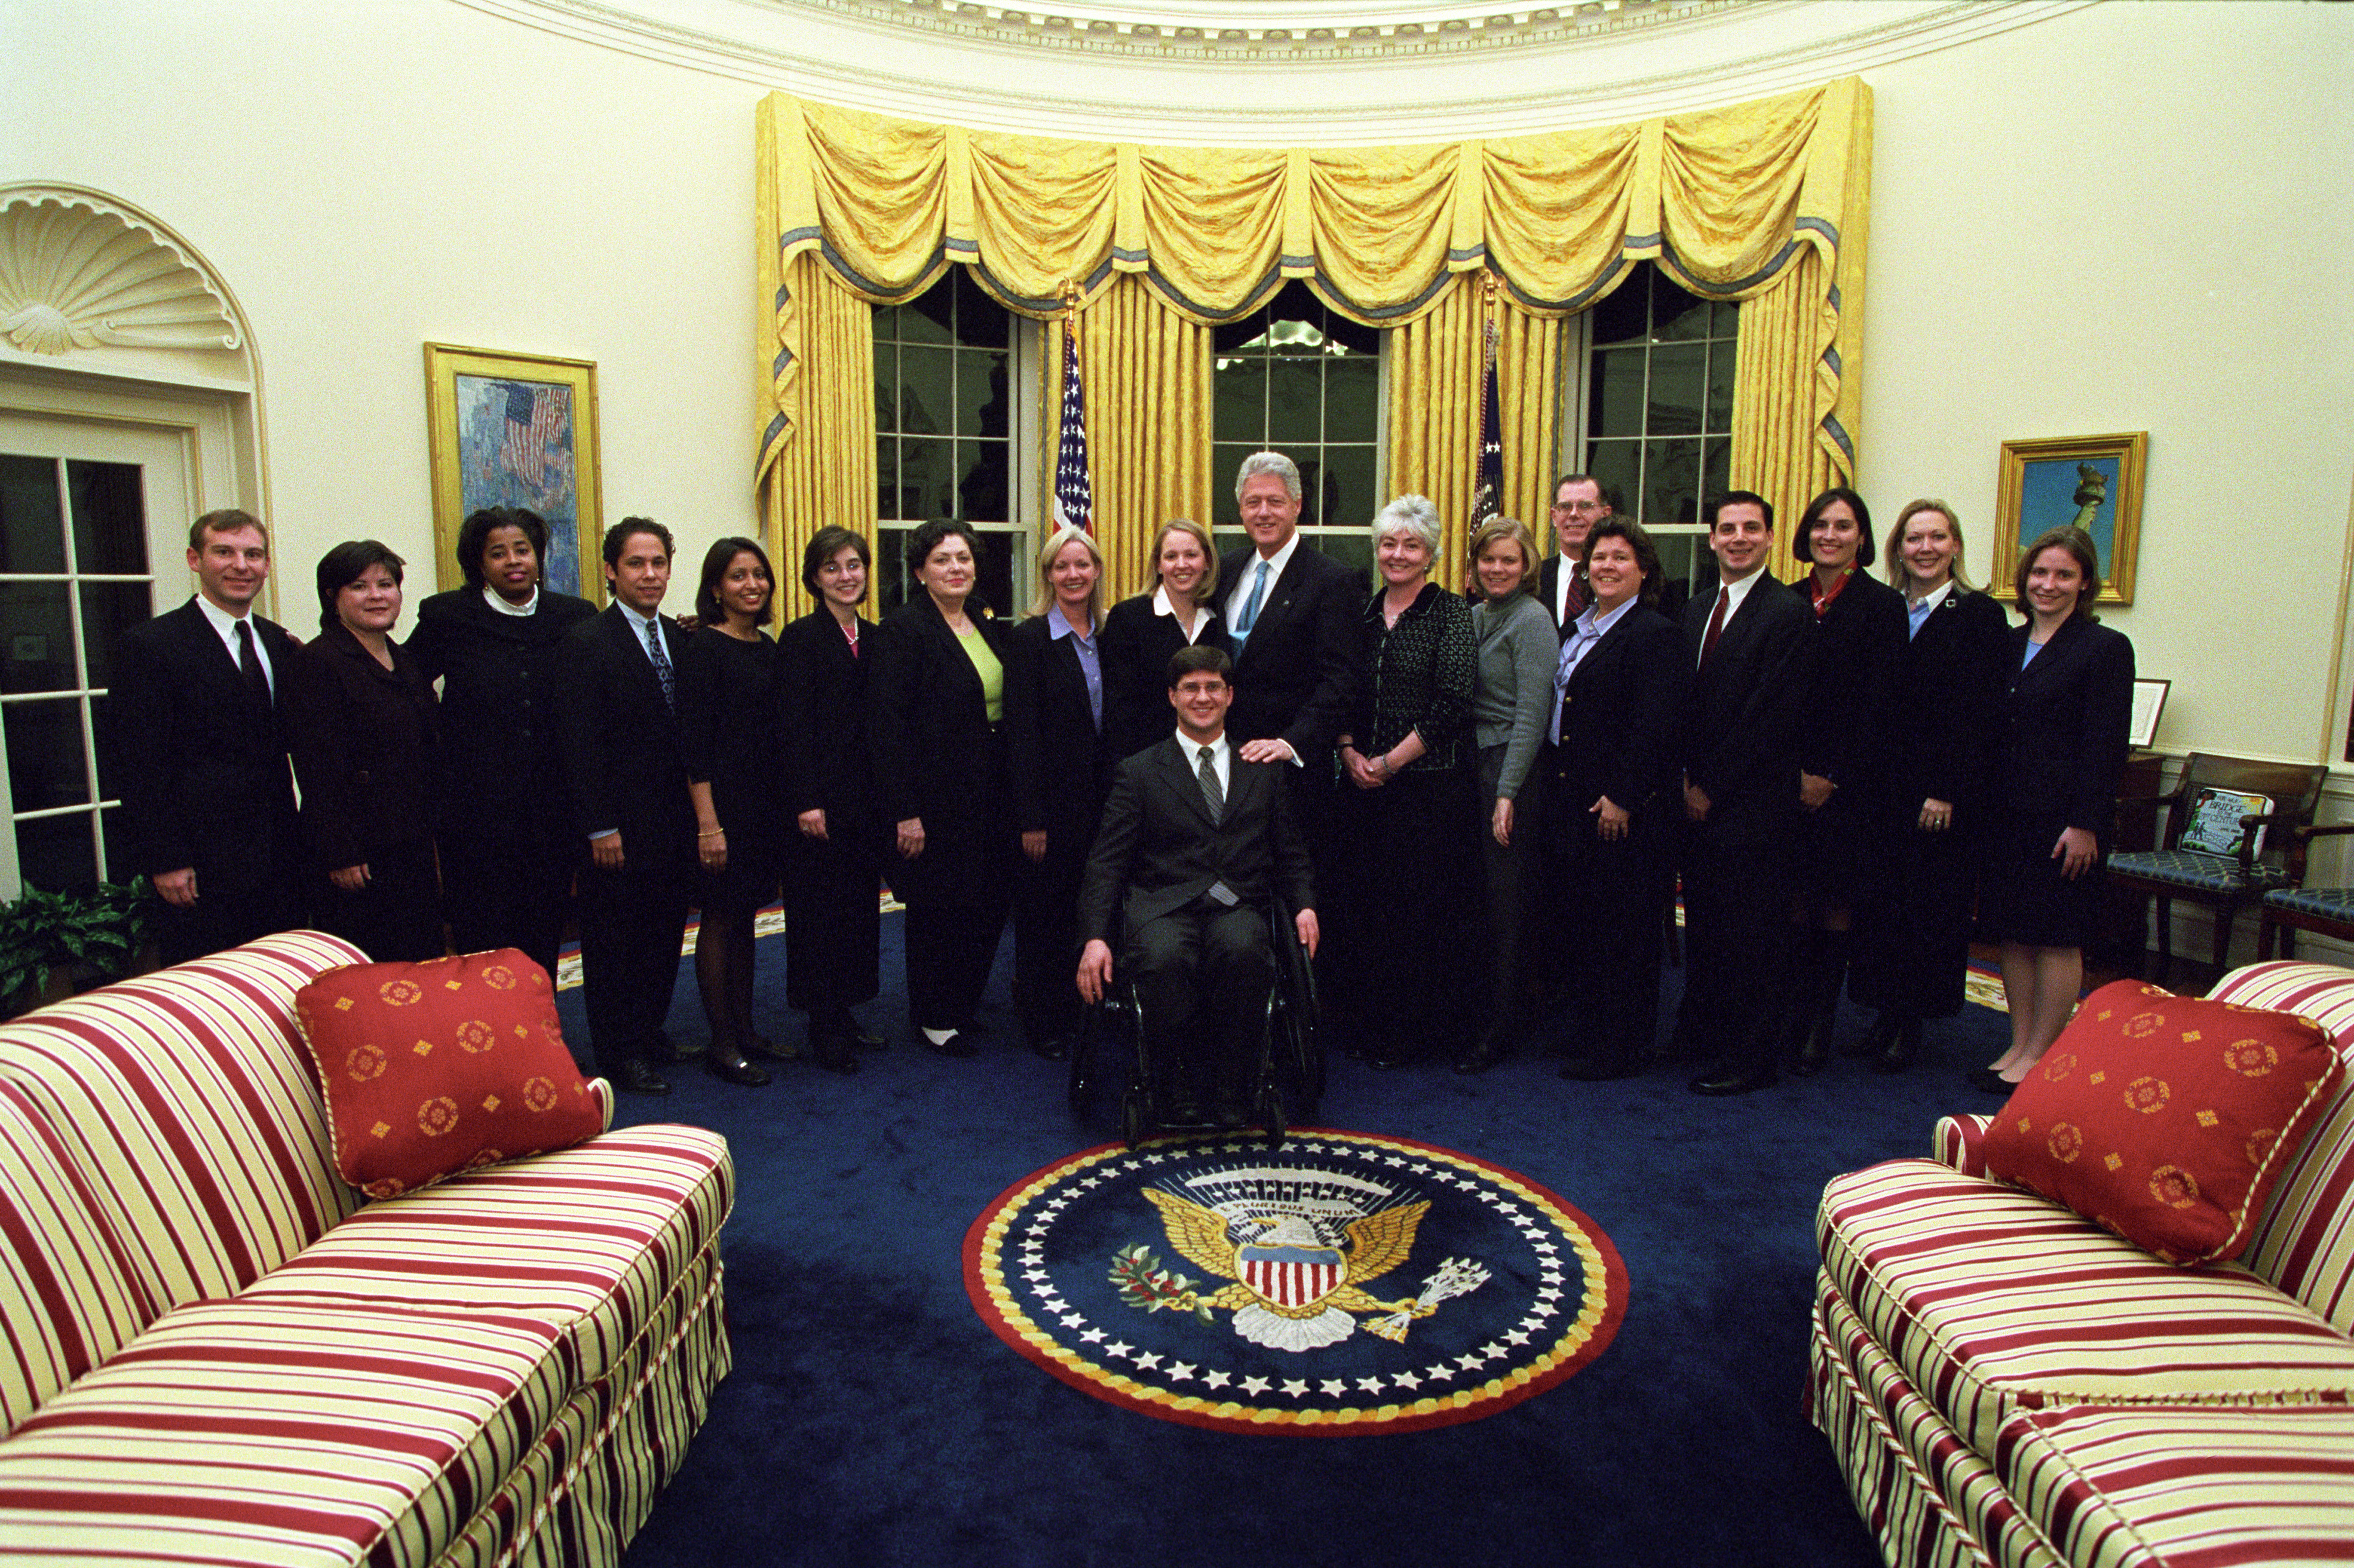 President Clinton joins the staff of the Public Liaison Office for a group photo in the Oval Office